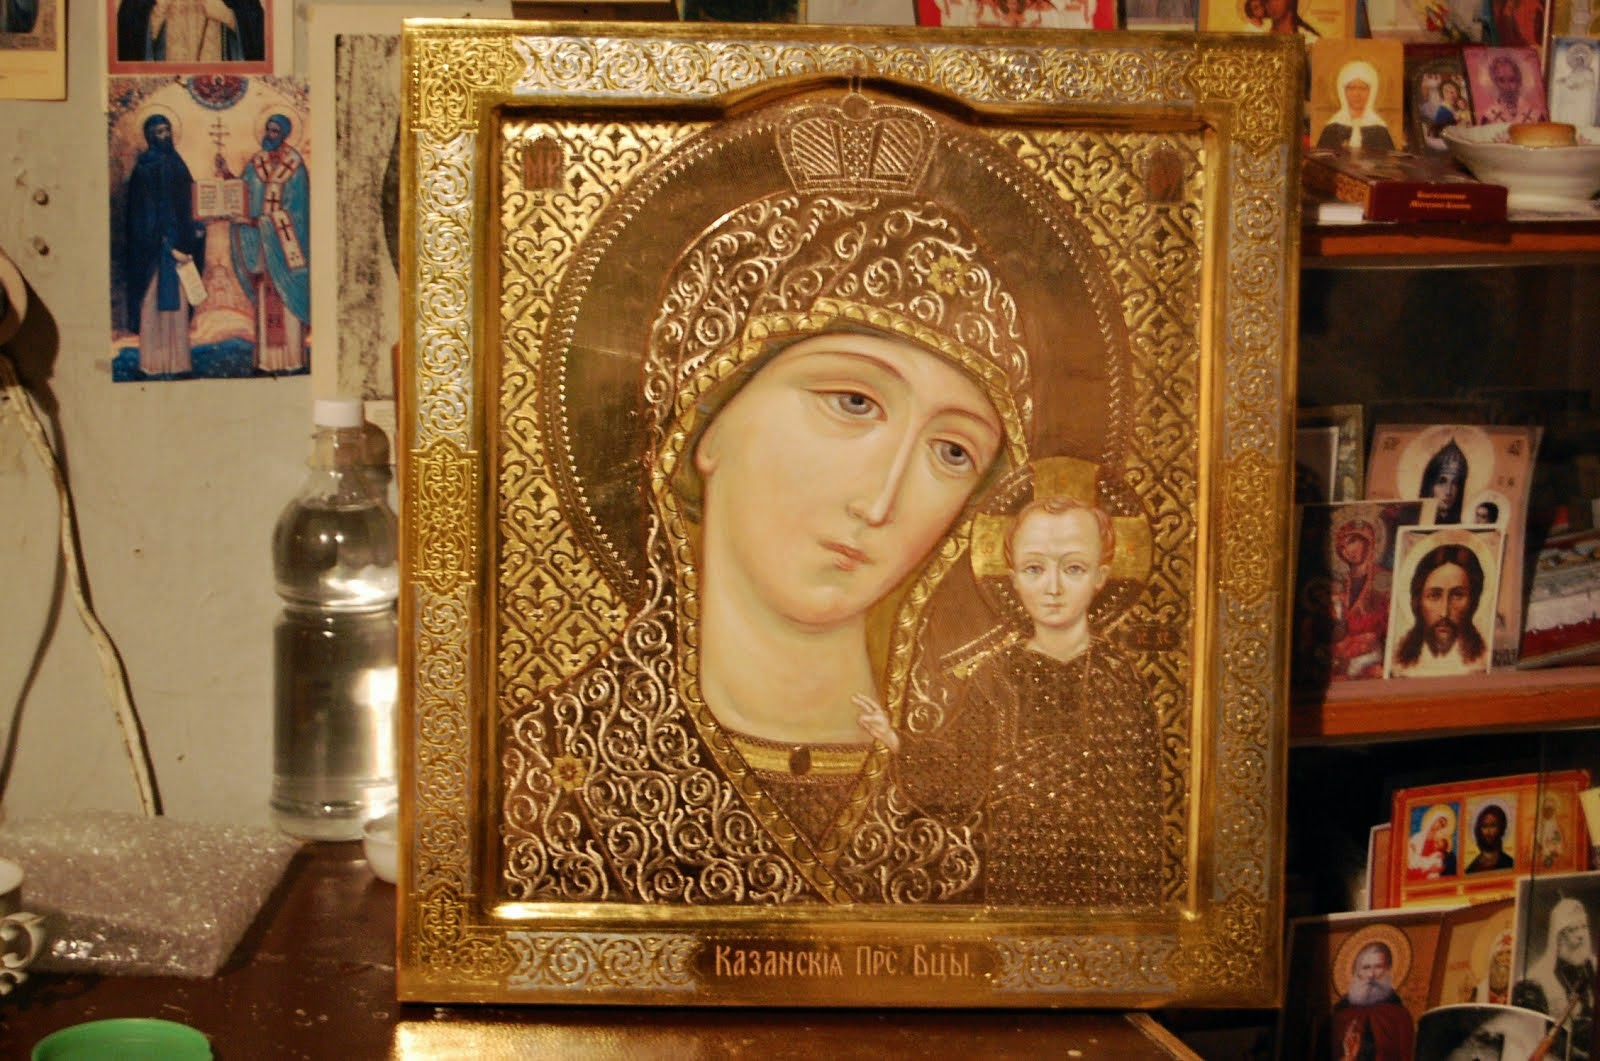 The Holy Mother of God Kazanskia, by Irina Veselkina Russia versta-K.ru